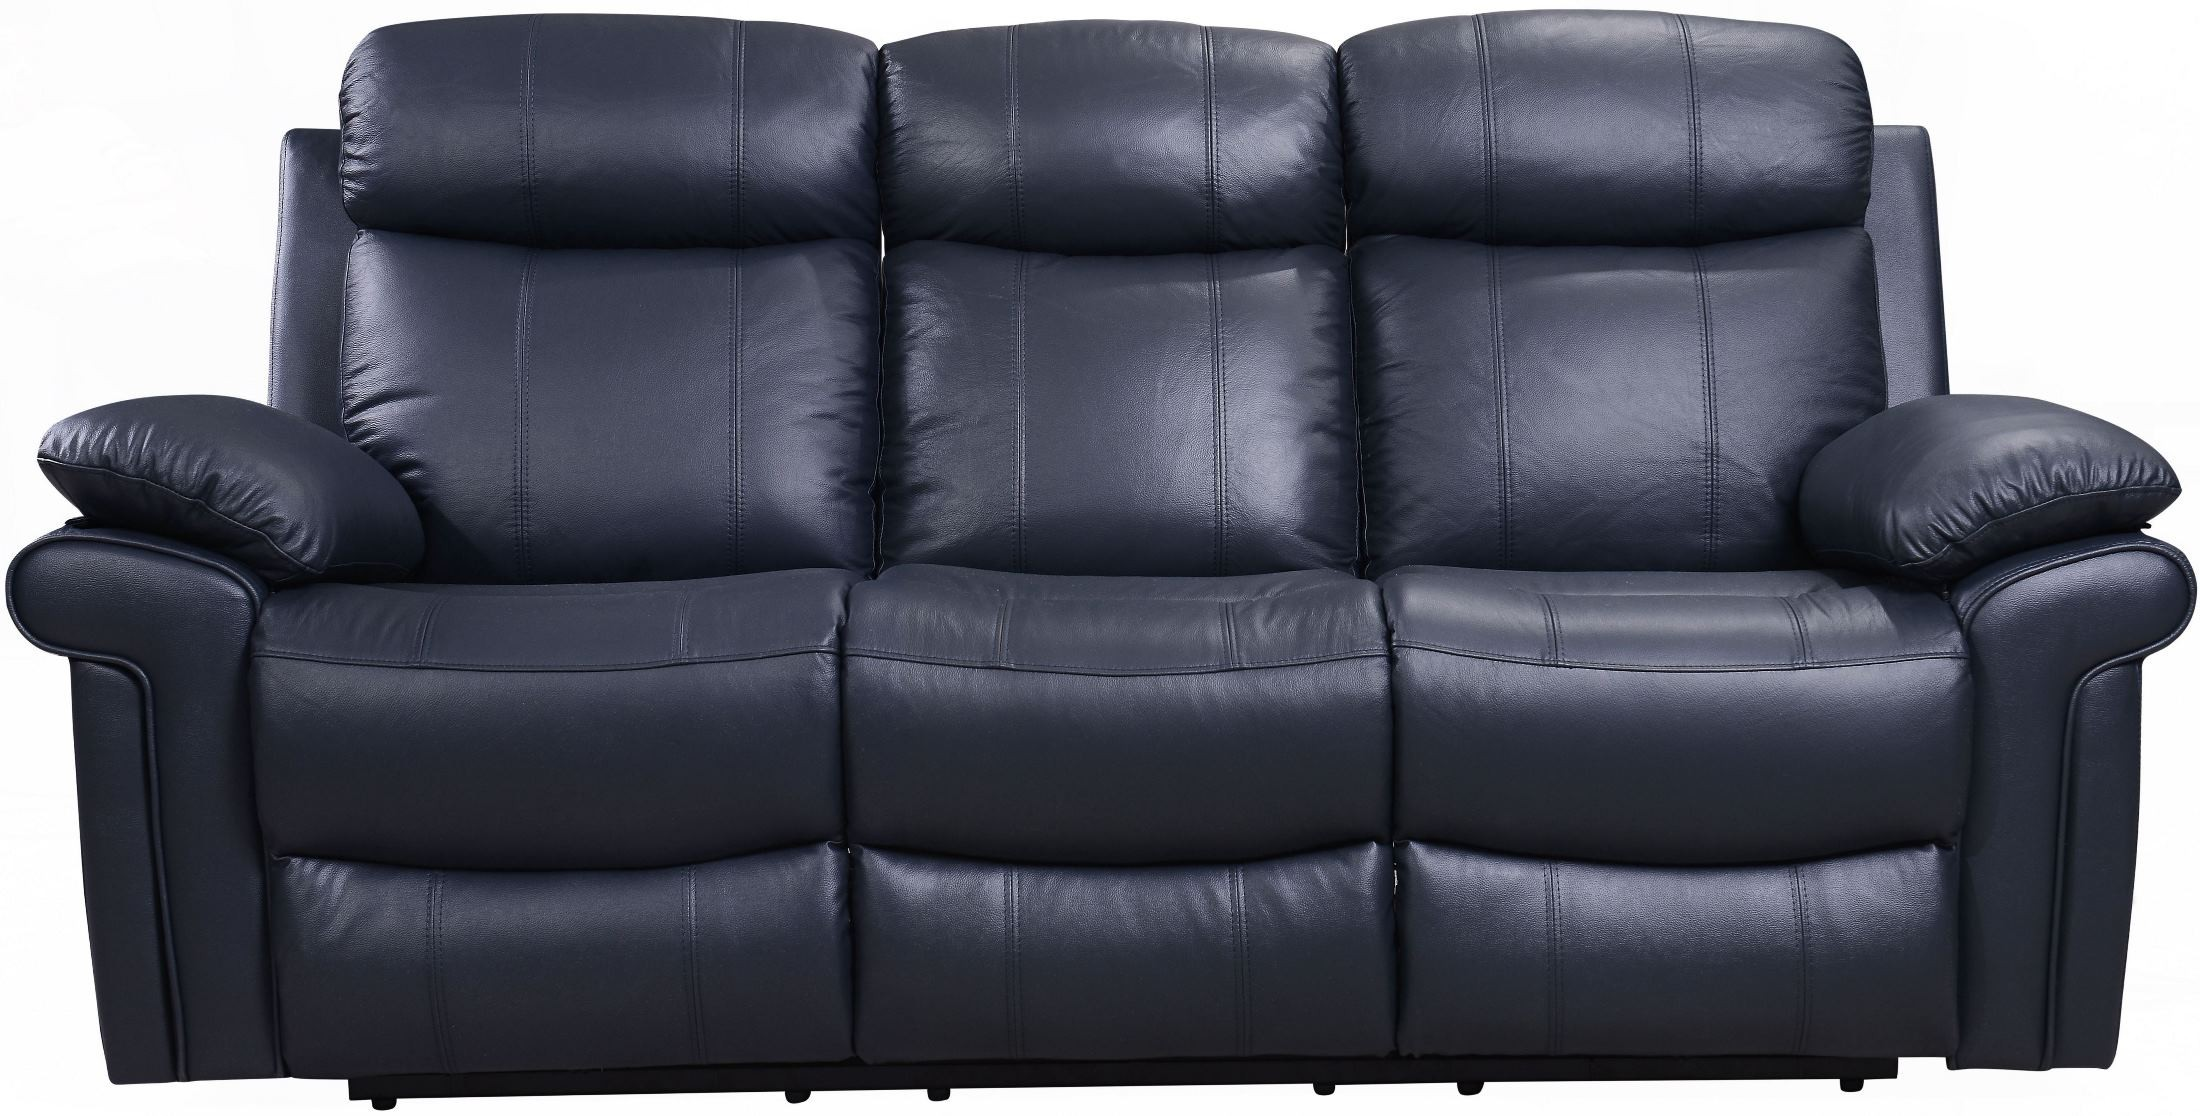 Shae Joplin Blue Leather Power Reclining Sofa 1555 E2117